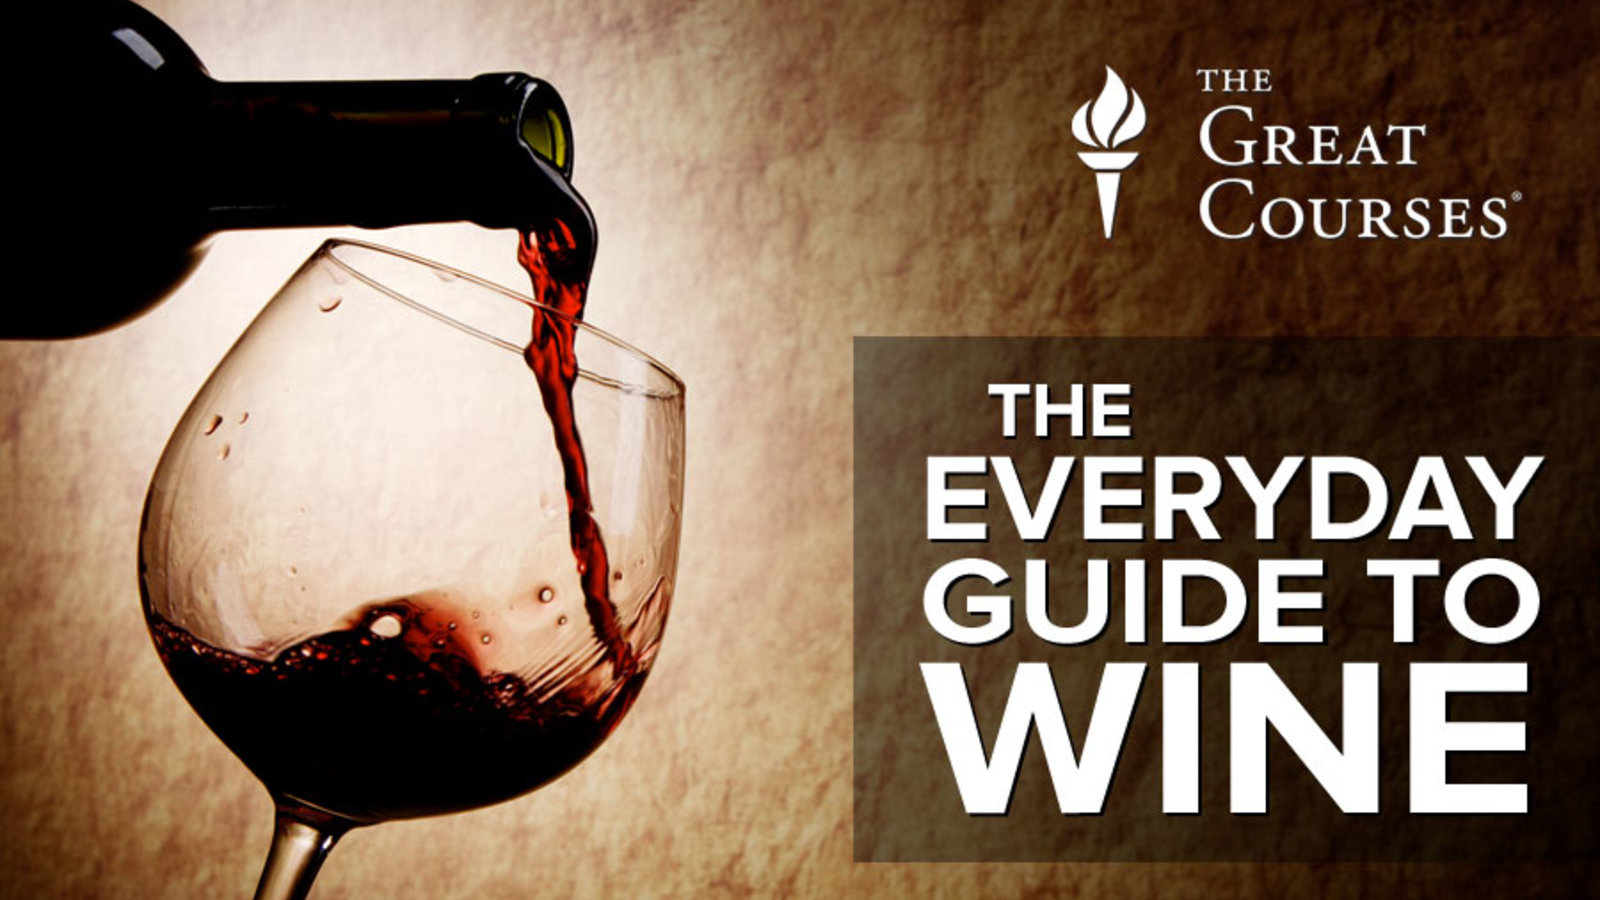 The Everyday Guide to Wine